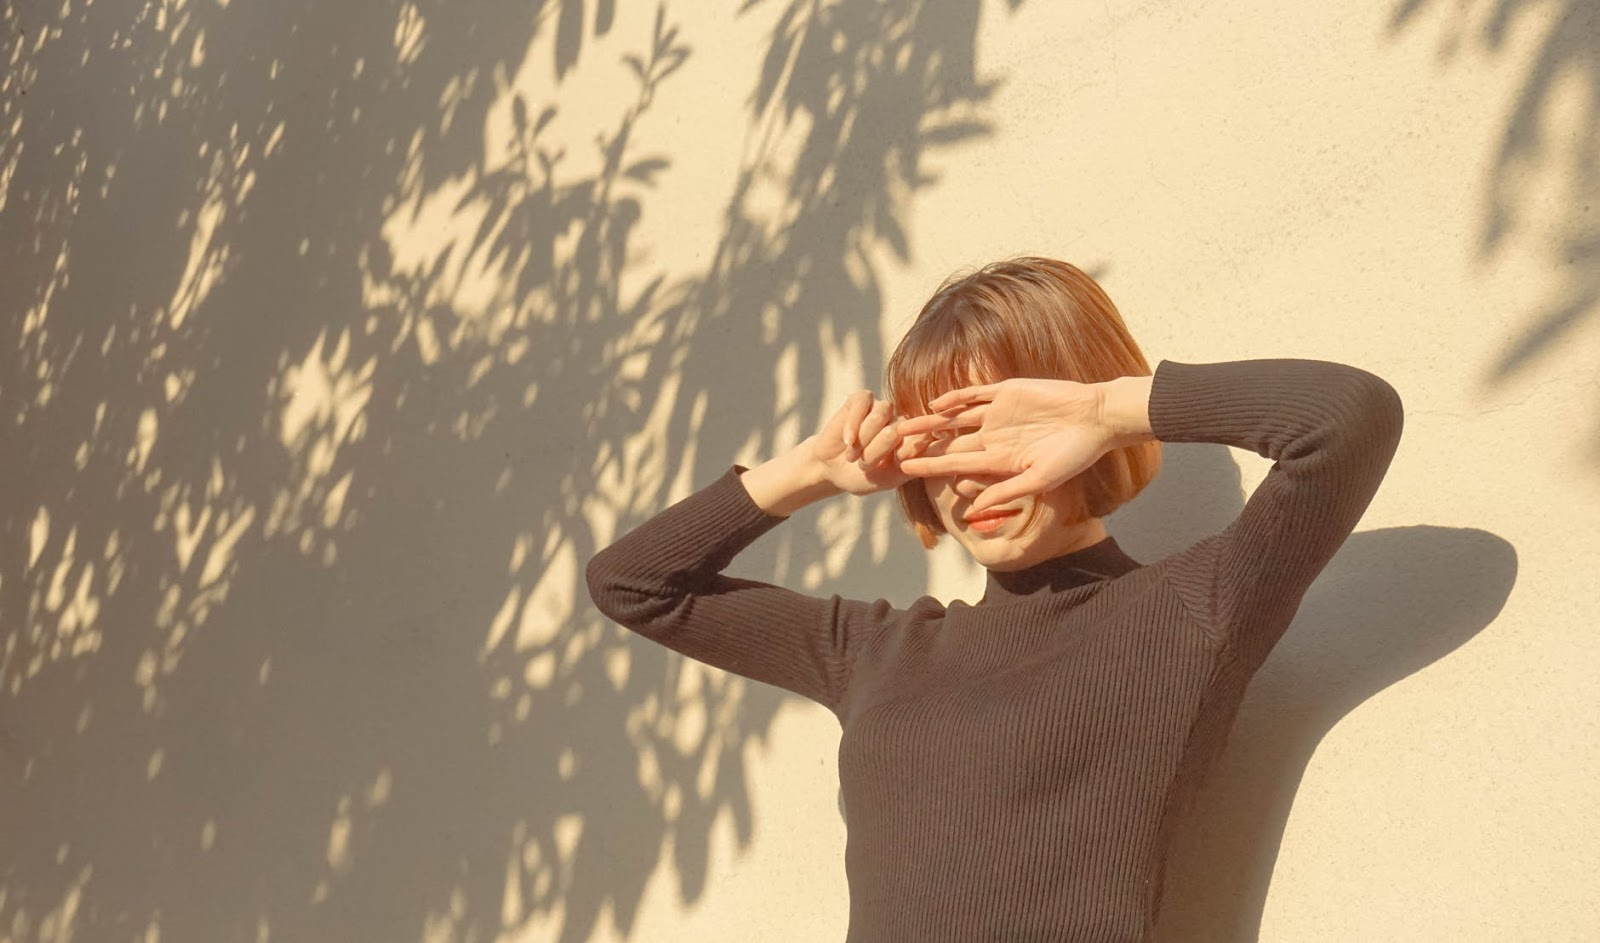 A woman stands in the sun and holds her hands over her eyes to protect her from the light.